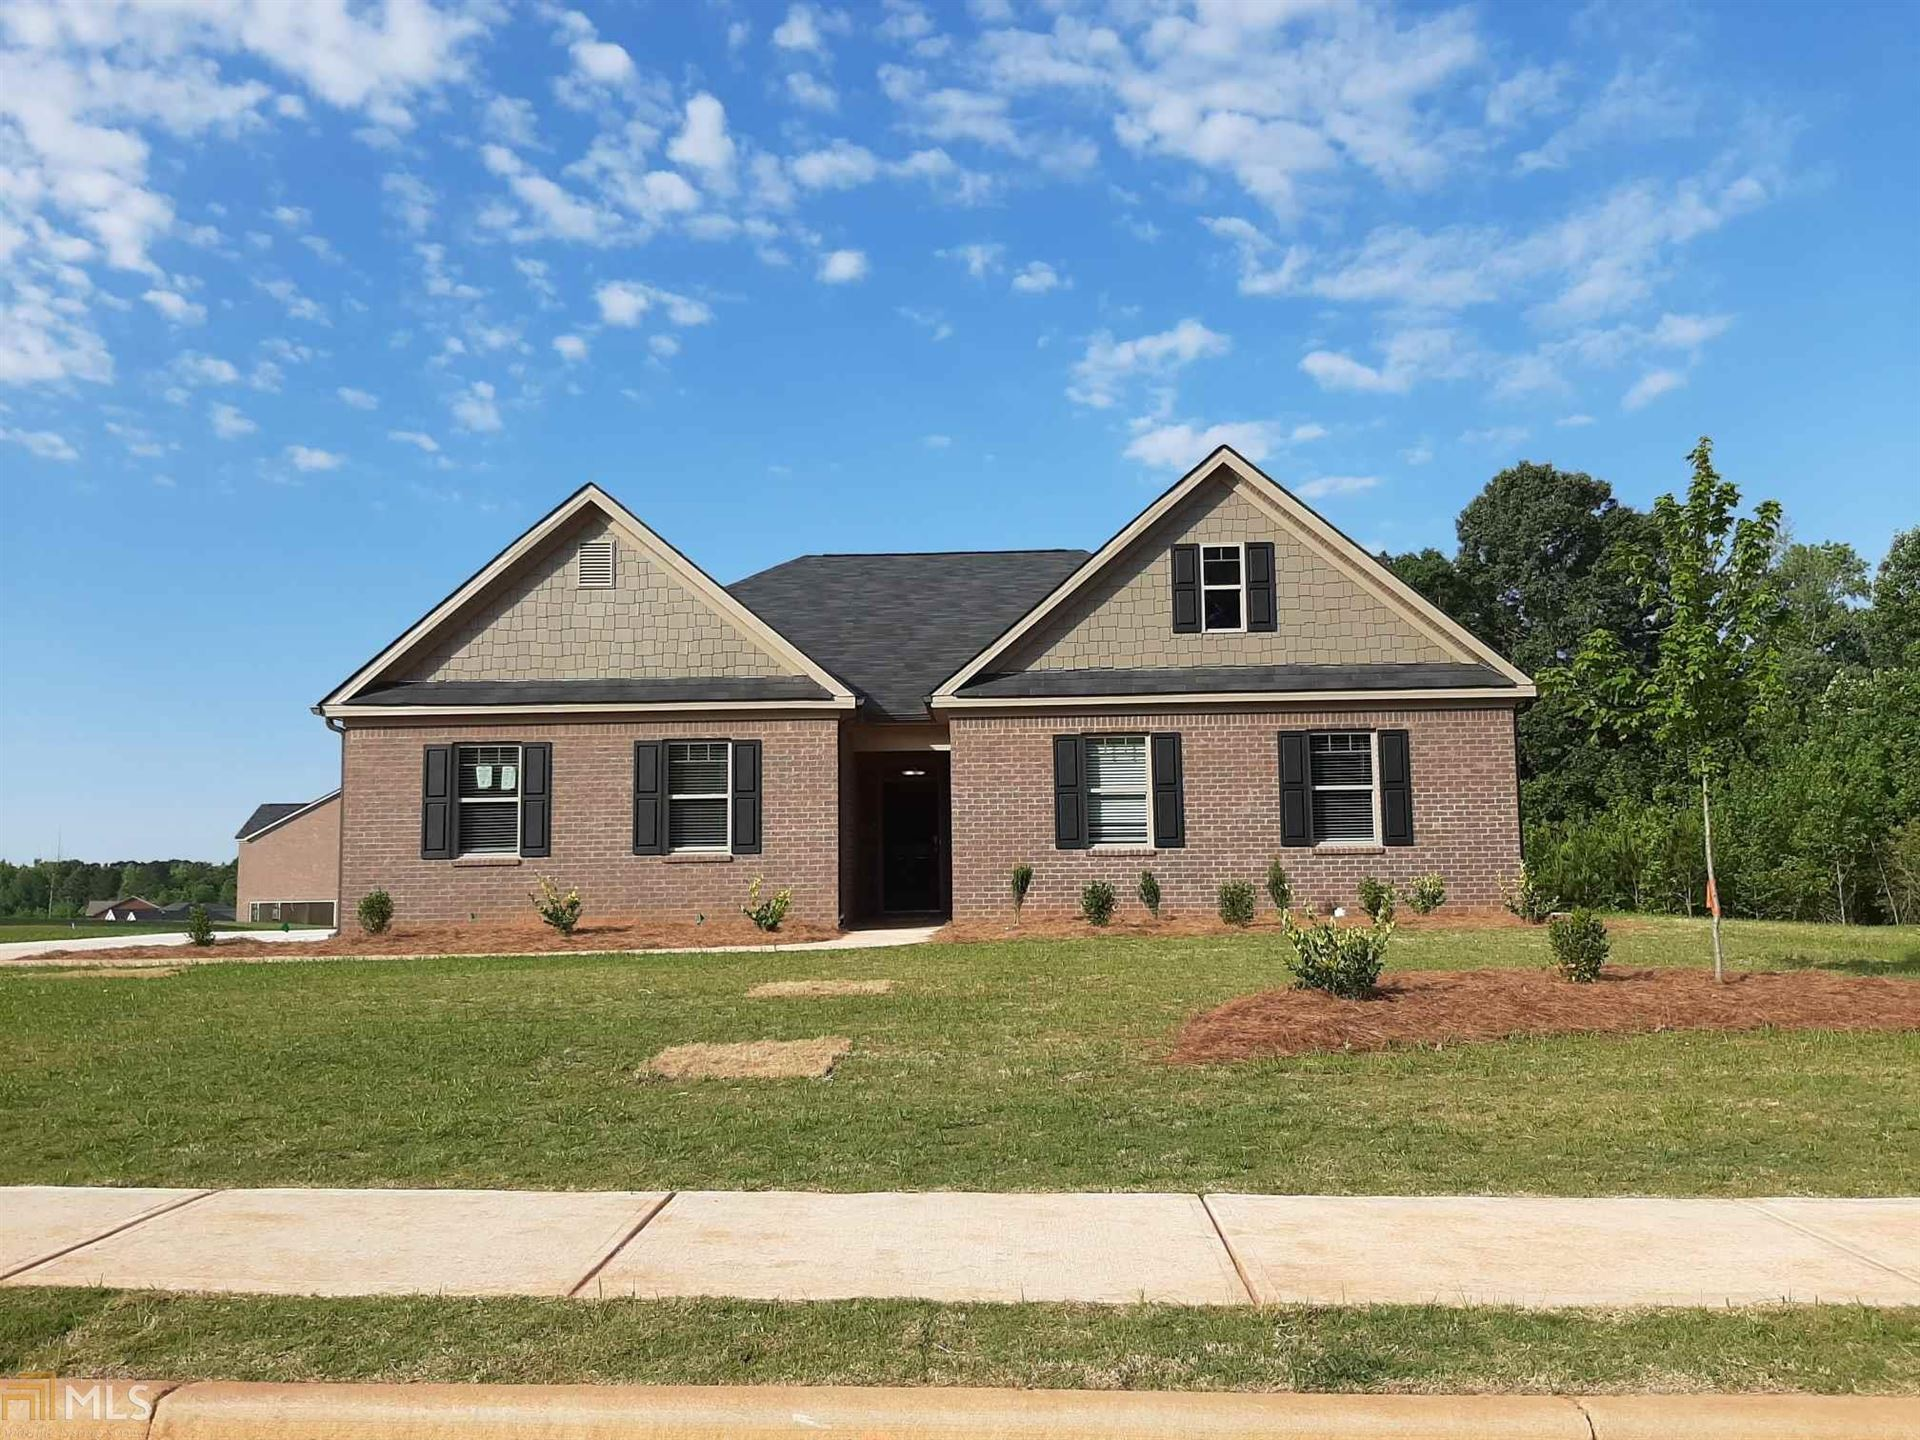 1446 Harlequin Way, Stockbridge, GA 30281 - #: 8826900